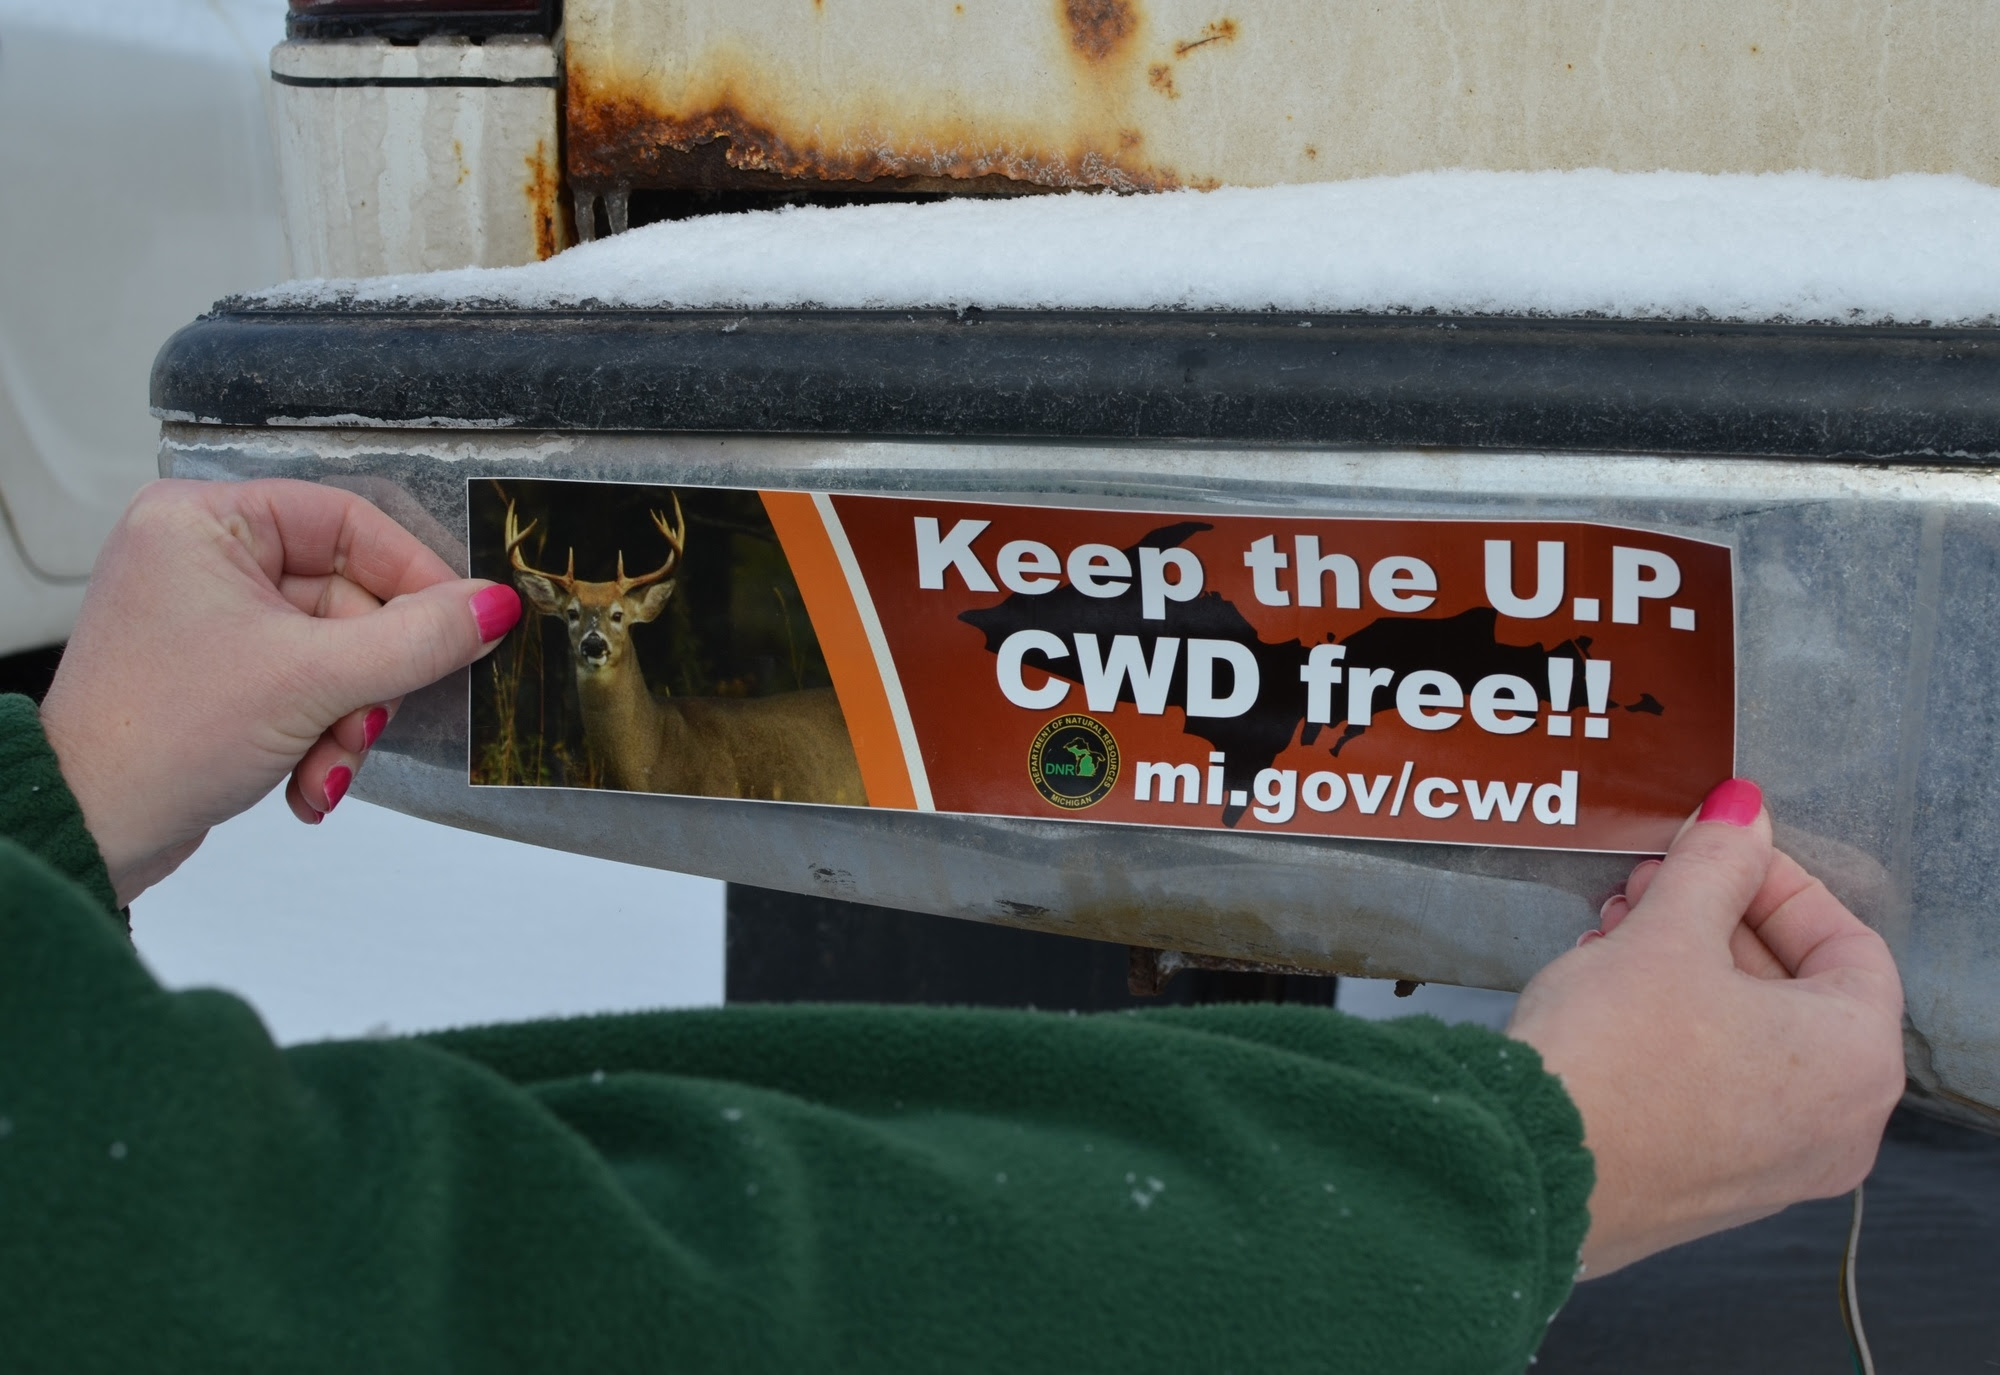 """Bumper stickers were among the education and outreach materials produced by the DNR as part of the """"Keep the U.P. CWD Free"""